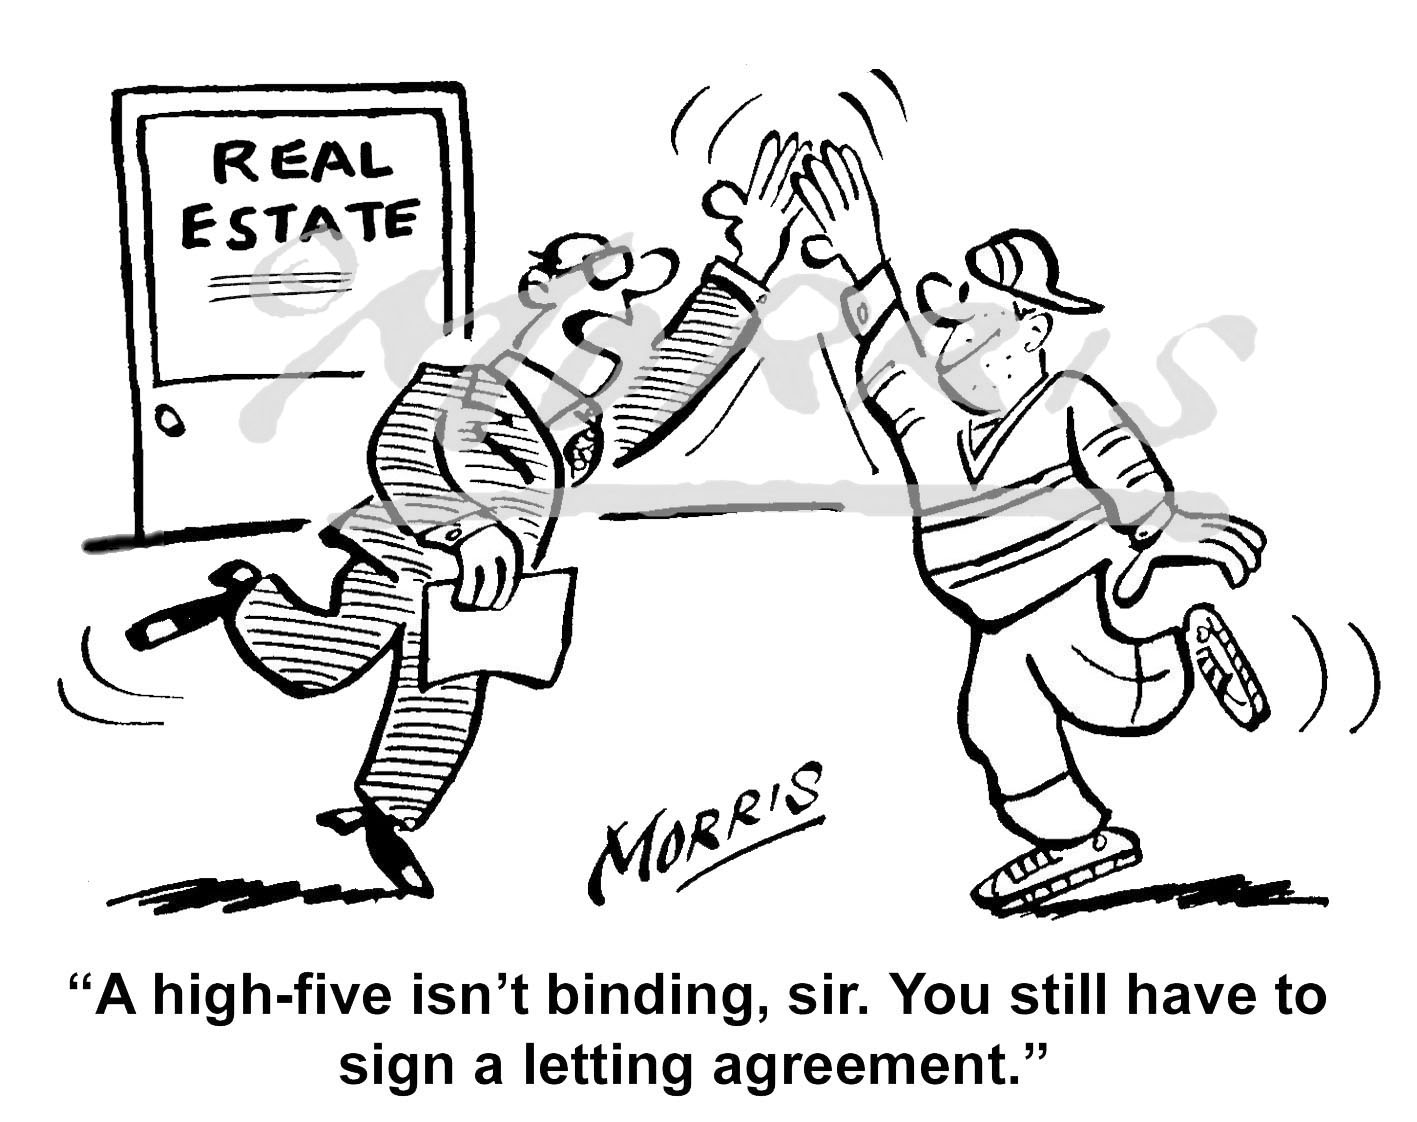 Real Estate cartoon, Property cartoon – Ref: 7390bwus